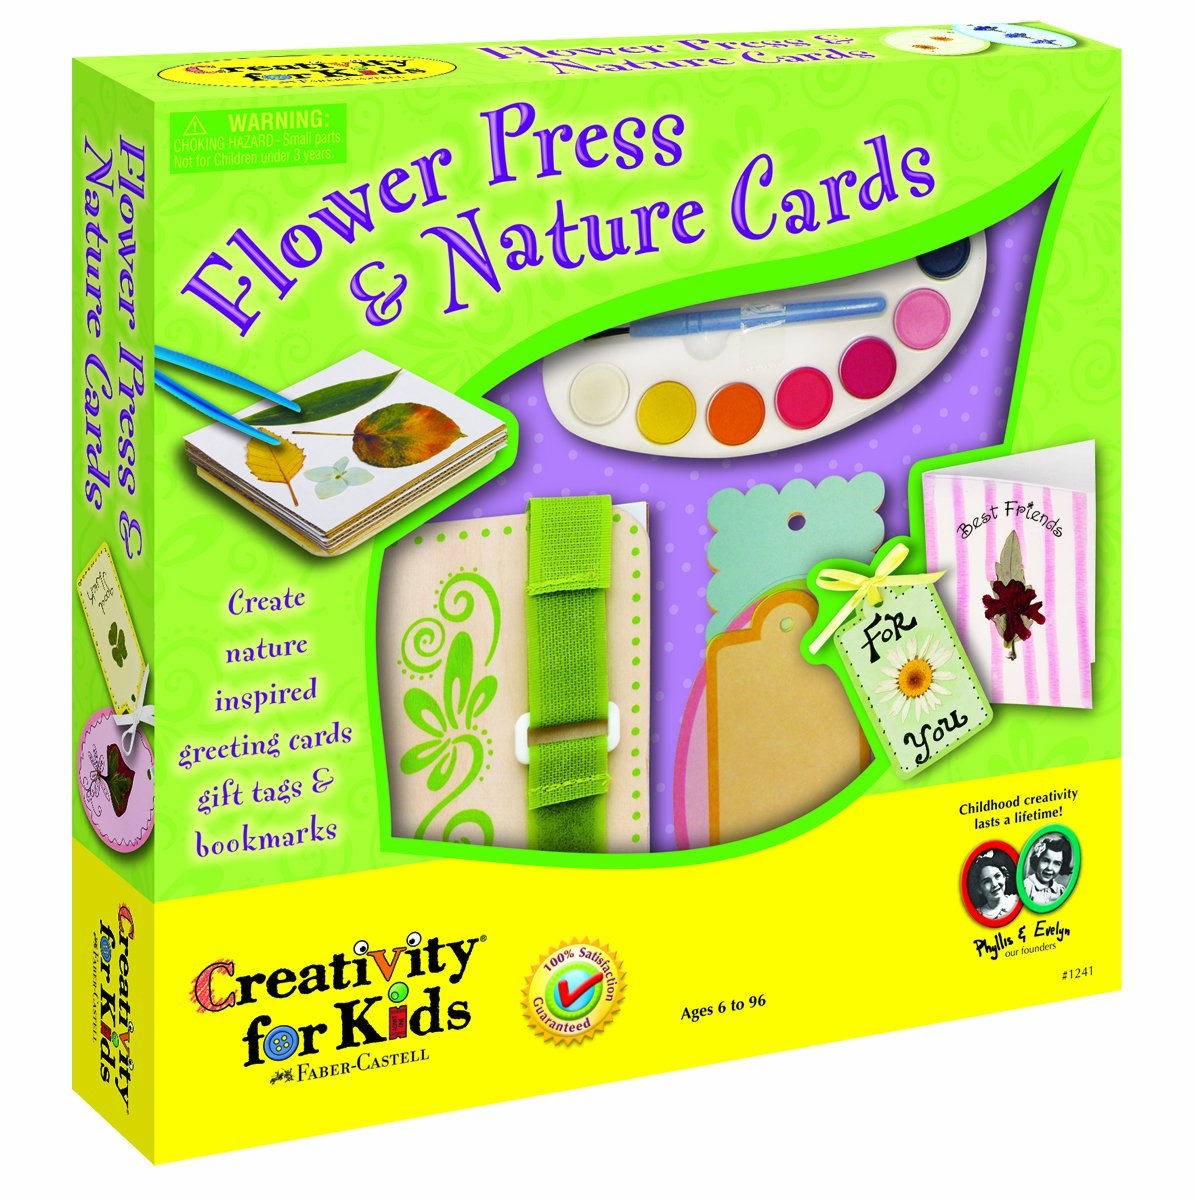 creativity for kids flower press and nature card amazon co uk